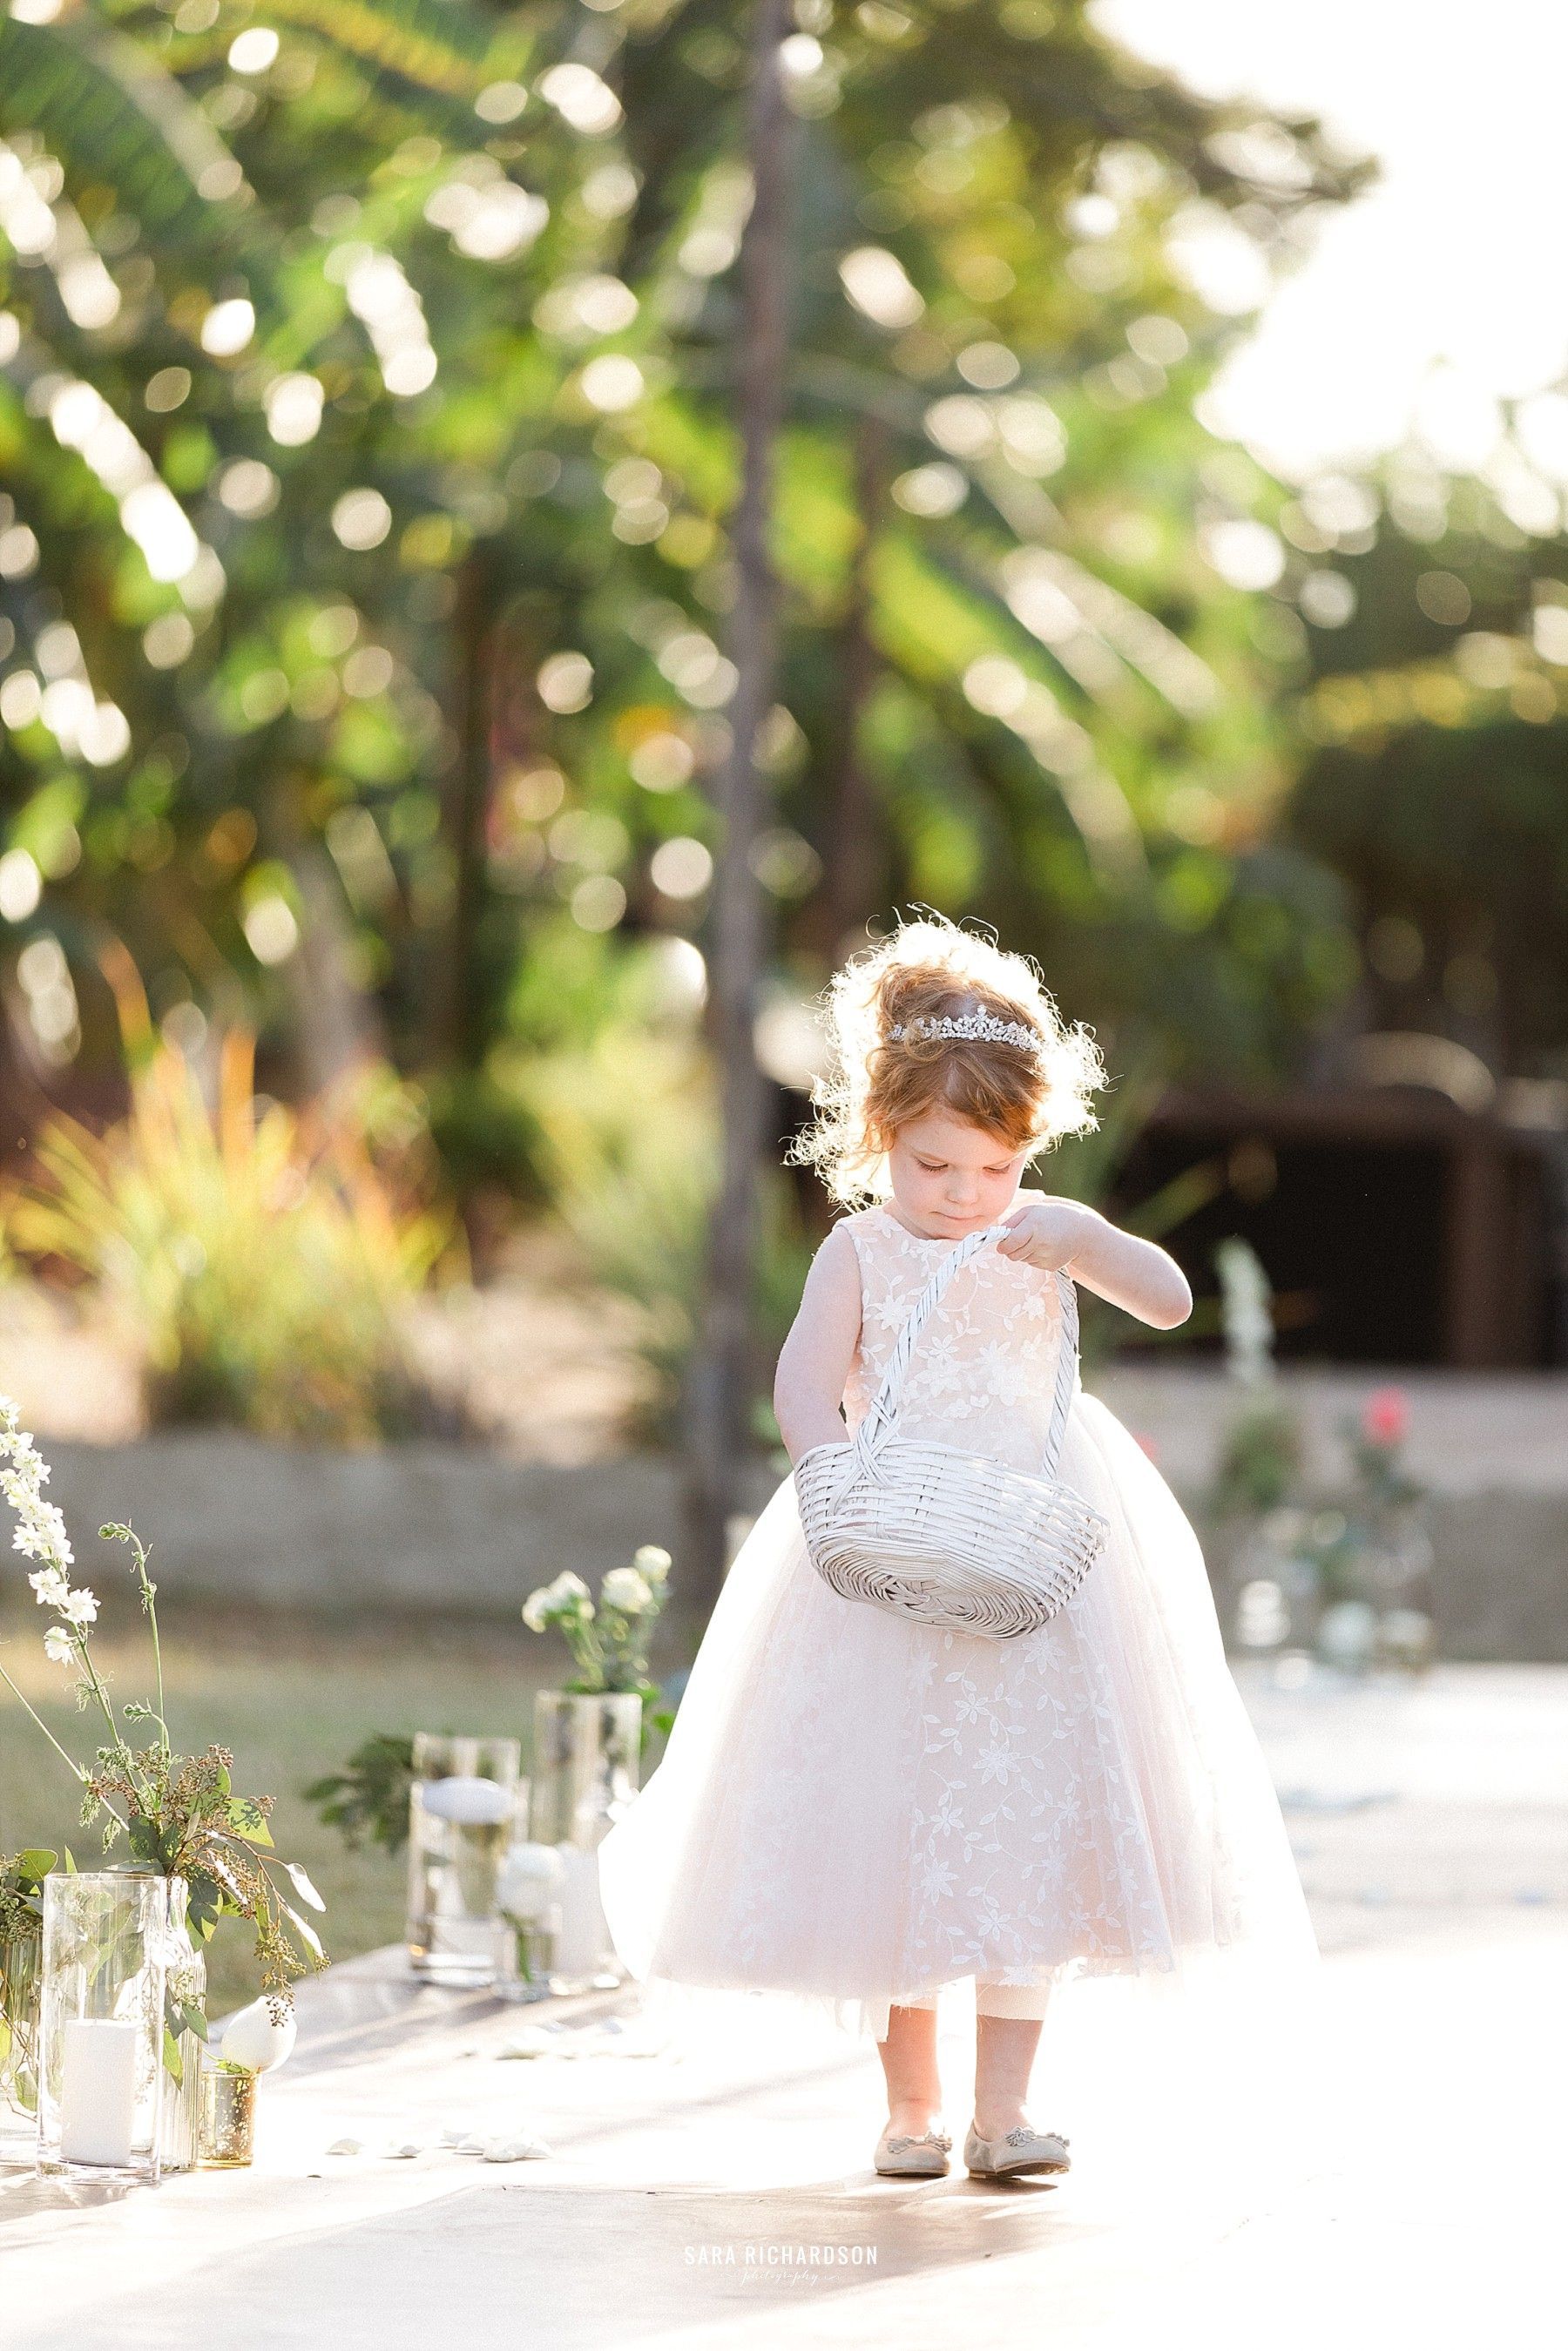 The cutest flower girl ever! She walked down that aisle and owned it! The Bride and Groom's photographer, Sara Richardson, was able to capture such beautiful moments!